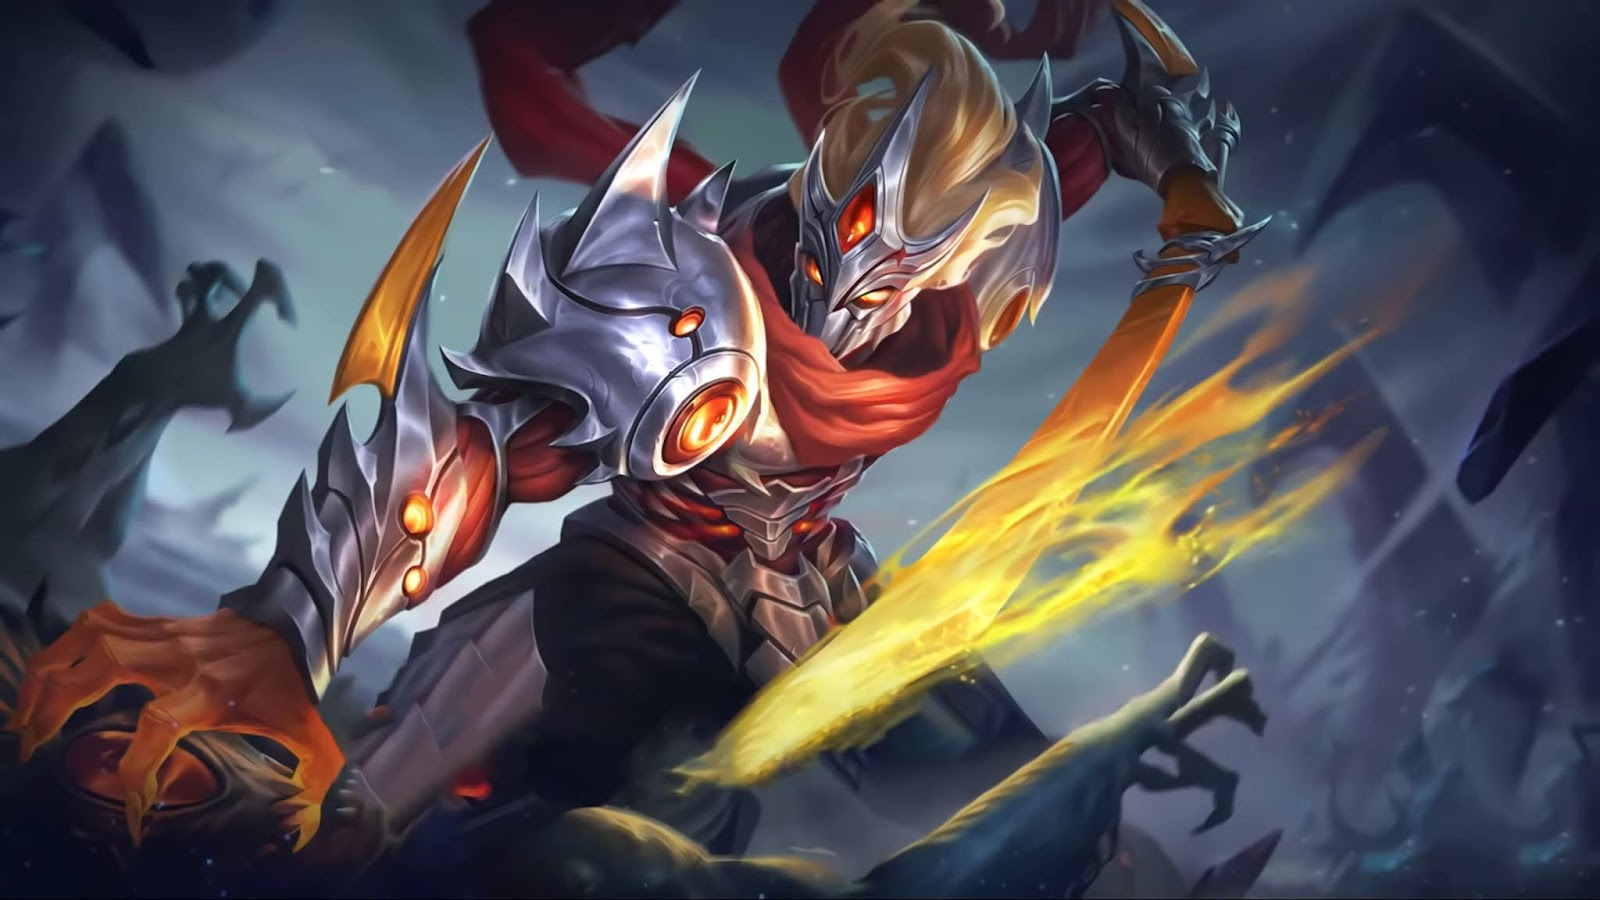 Wallpaper Hayabusa Experiment 21 Skin Mobile Legends HD for PC